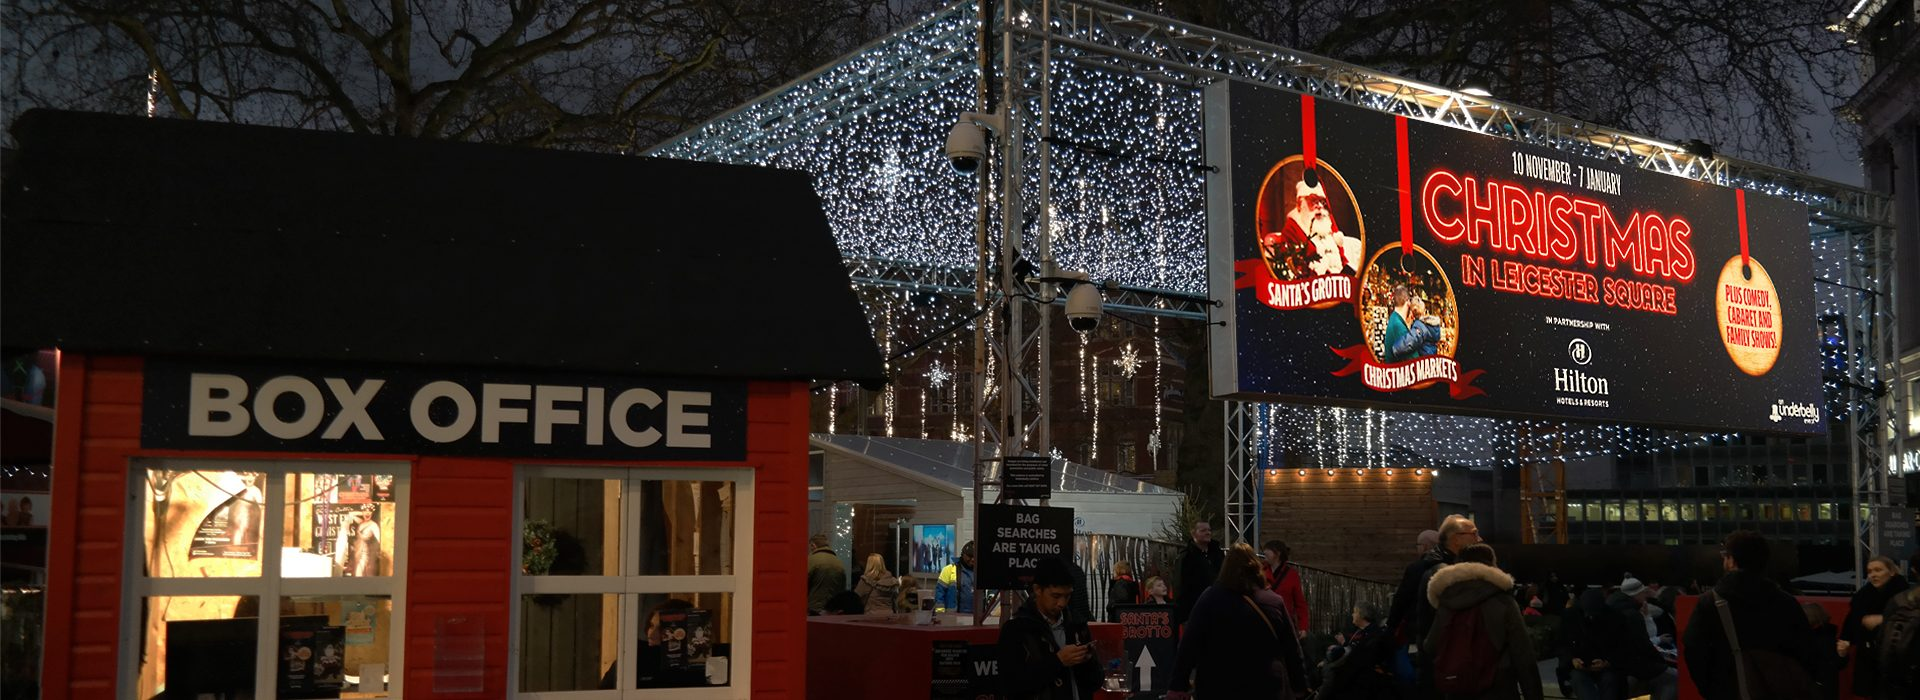 christmas_in_leicester_square_graphics_print_and_installation